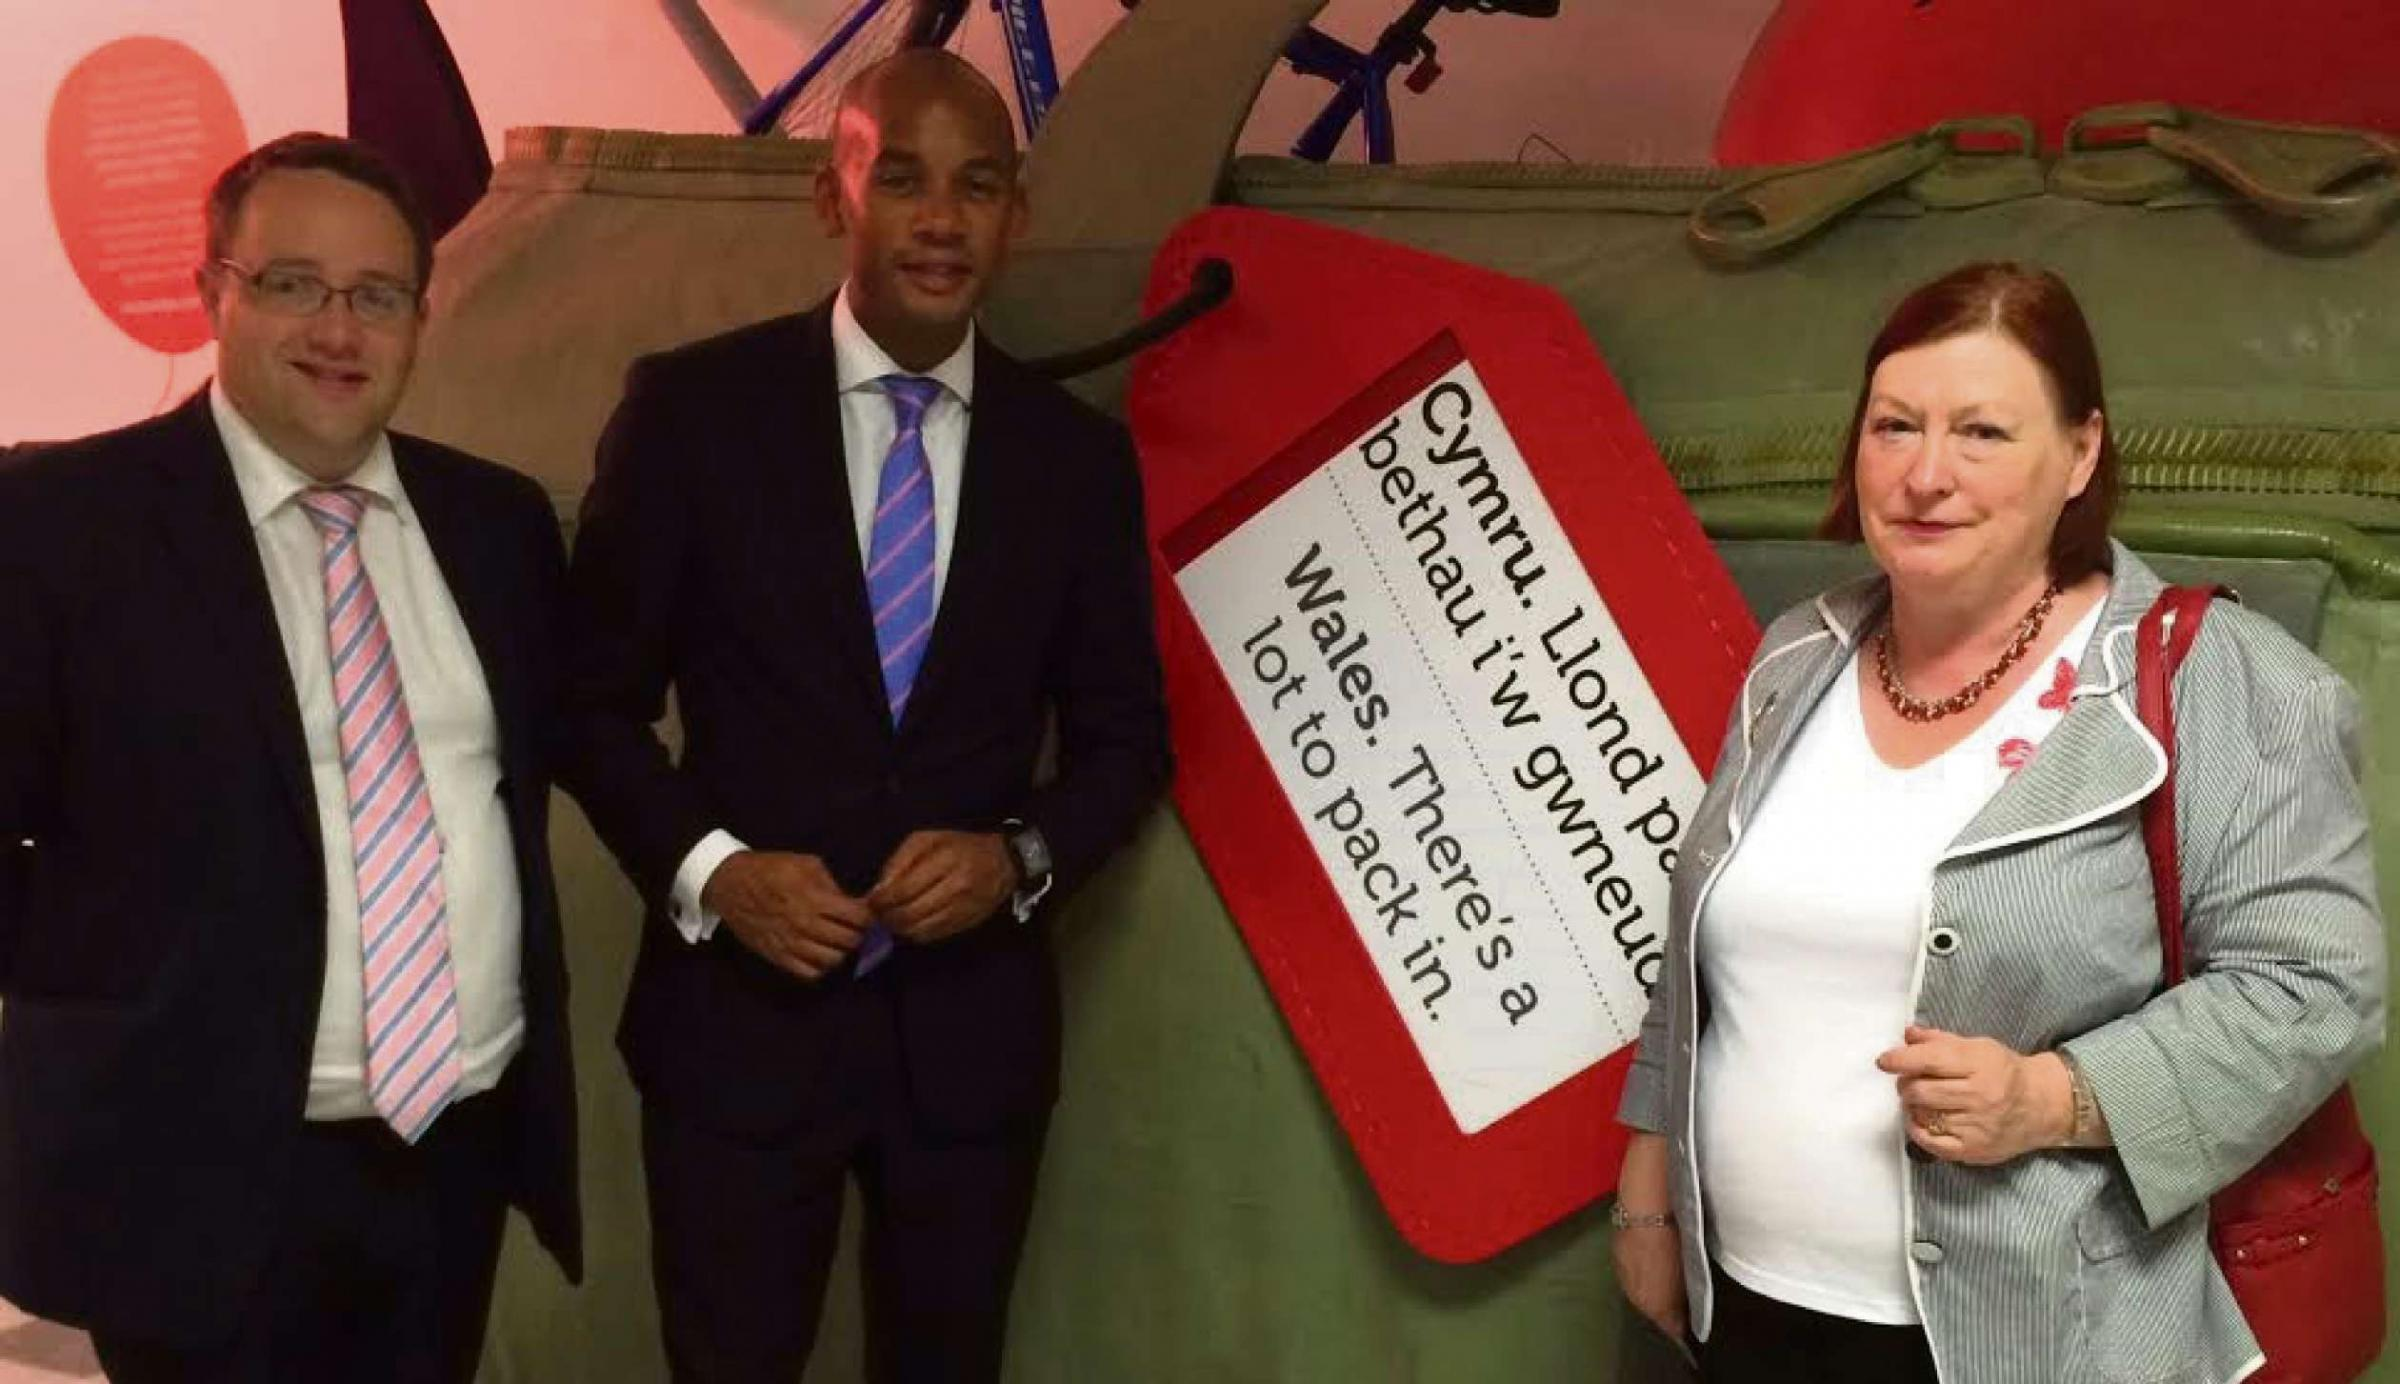 AIRPORT: Cllr Elmore with MP Chuka Umunna MP and Edwina Hart AM